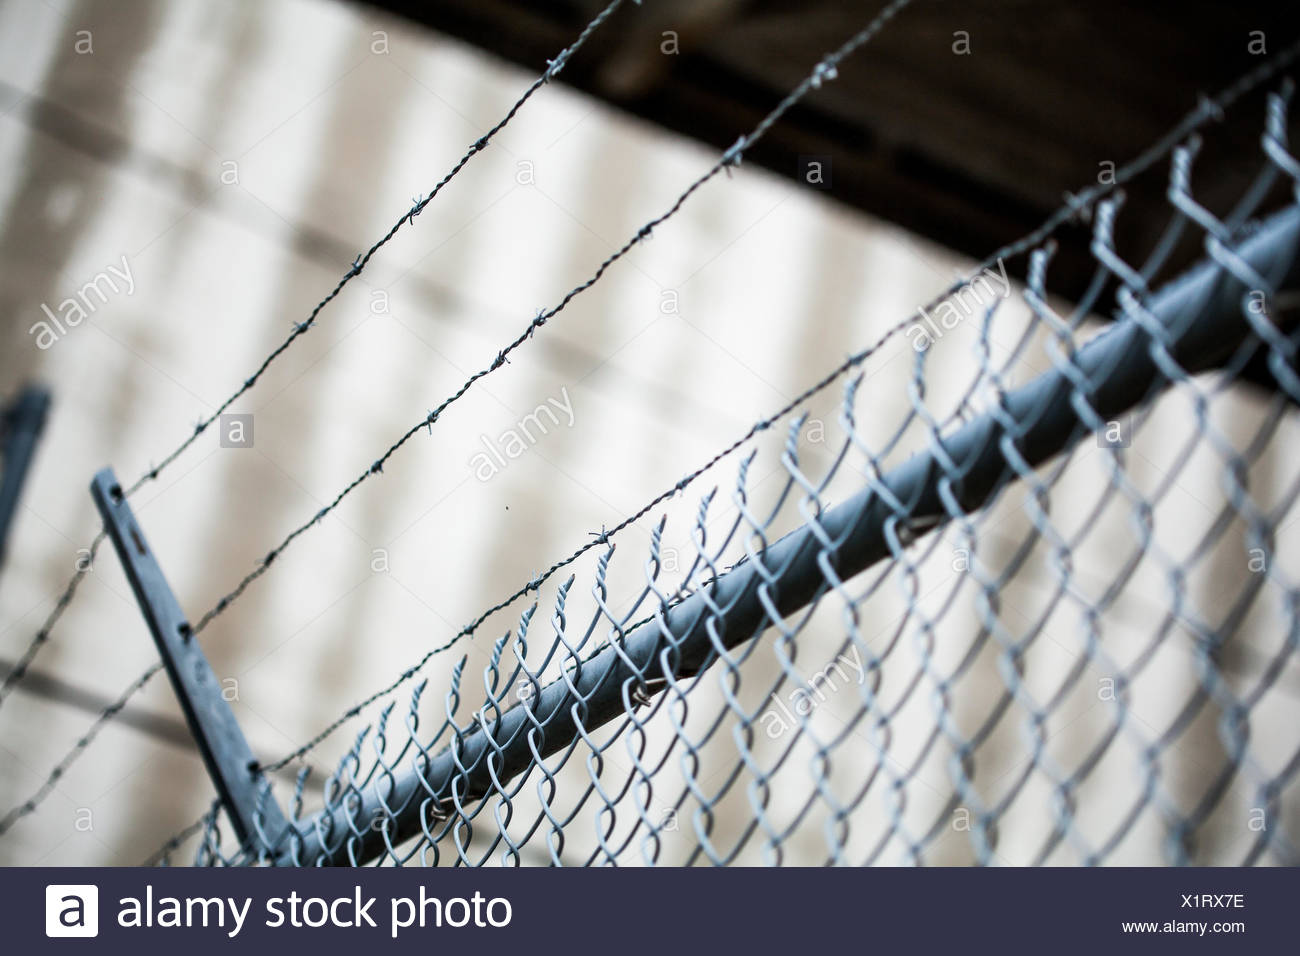 Wall Barrier Stockfotos & Wall Barrier Bilder - Seite 7 - Alamy